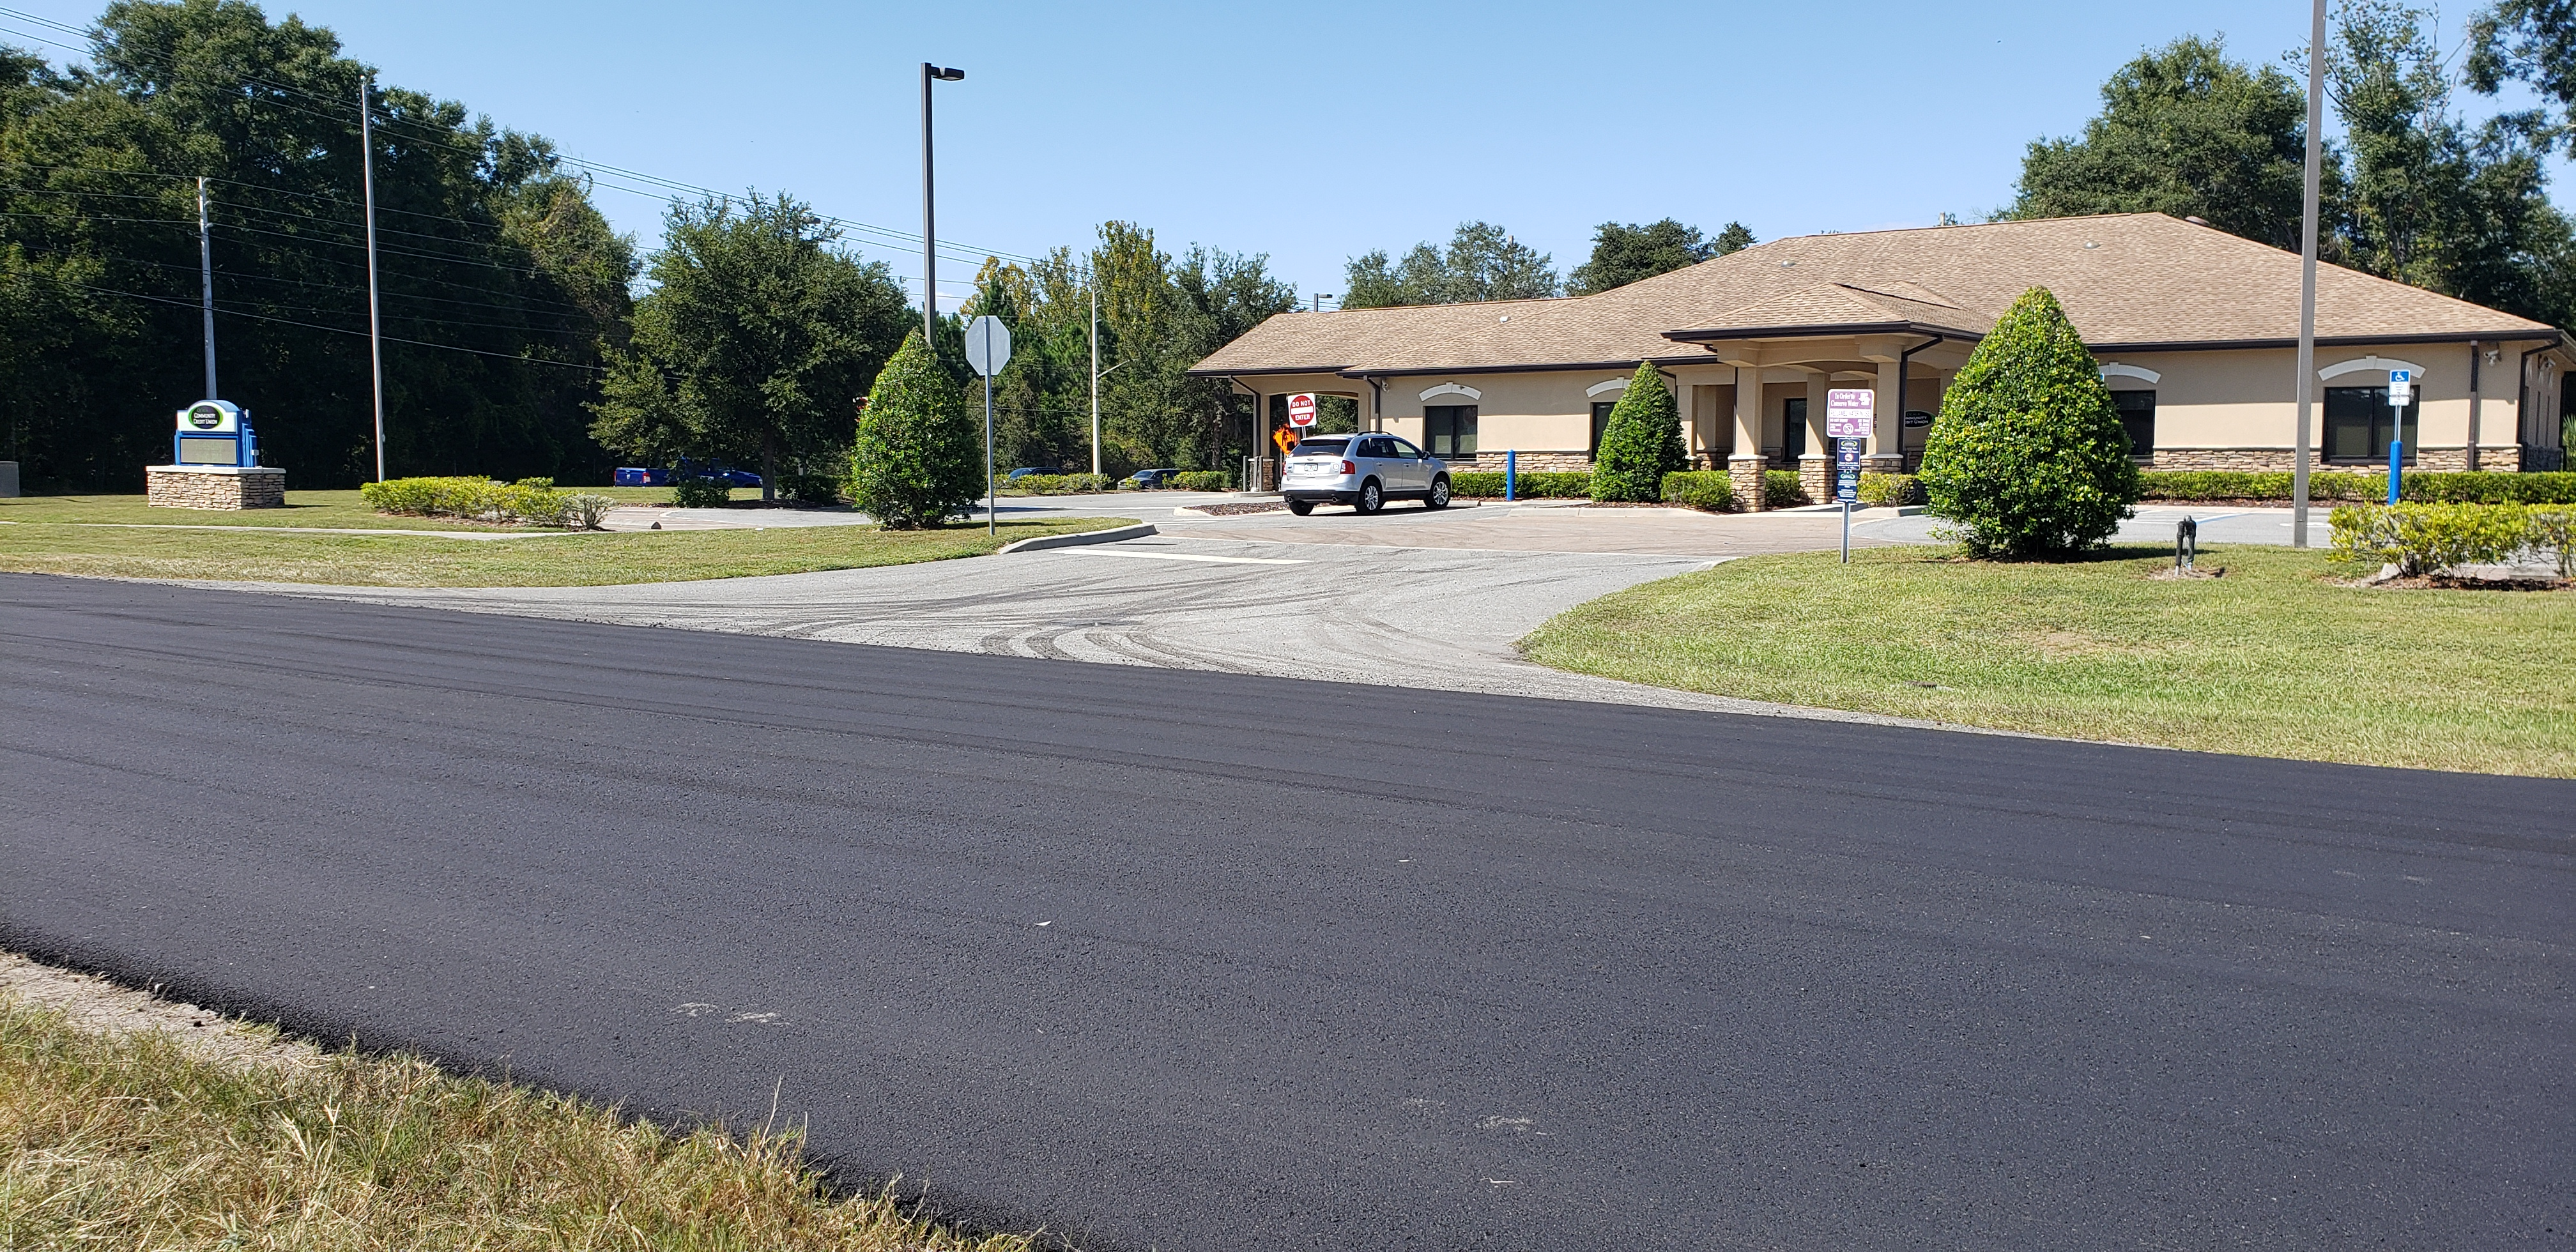 09-24-2019 New pavement in front of OCCU